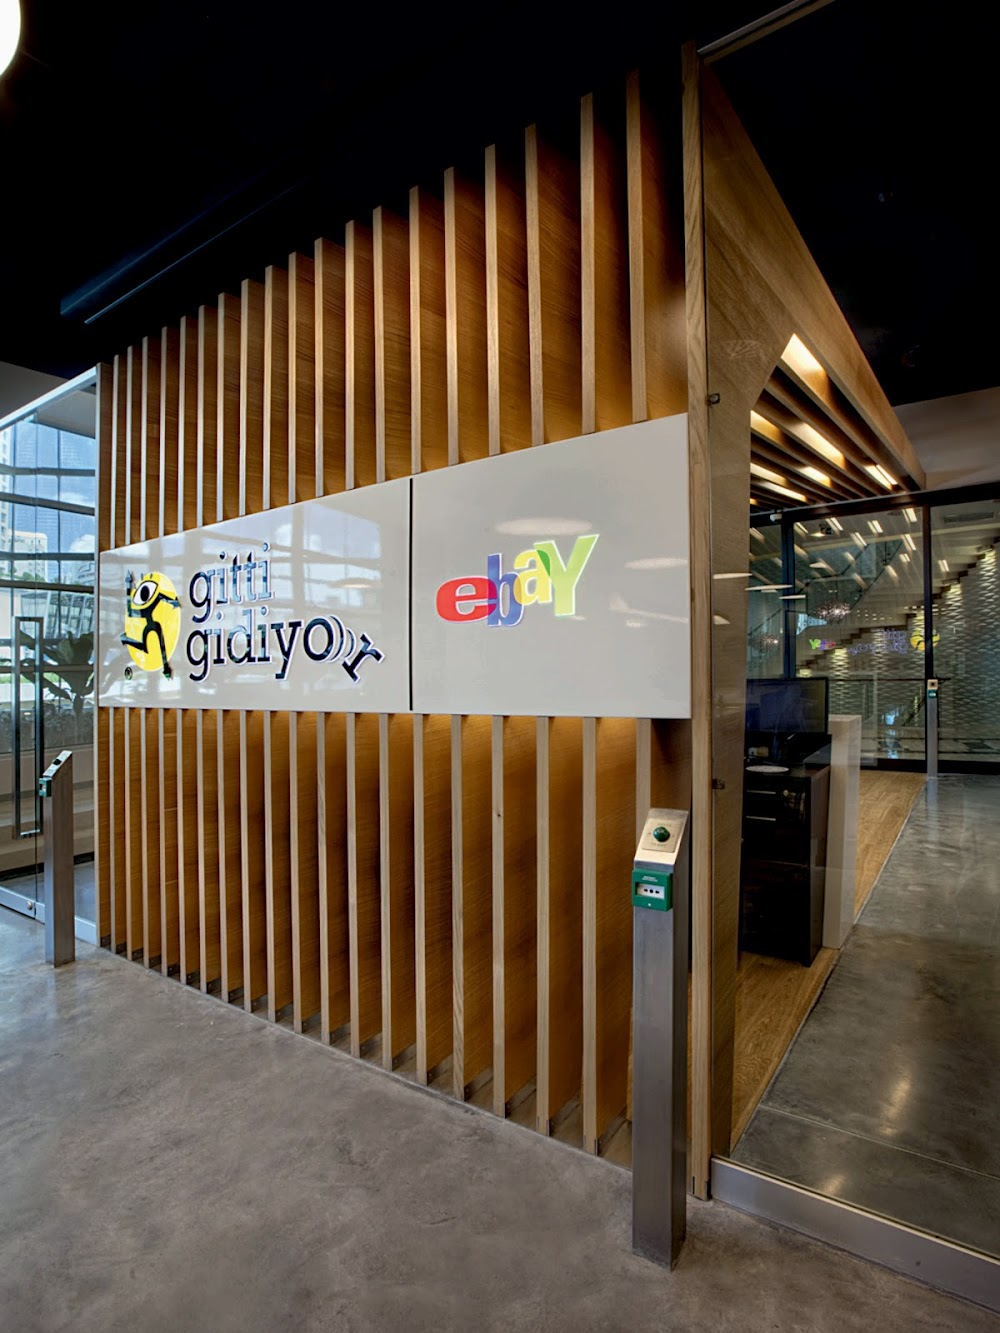 Ebay by Oso Architecture